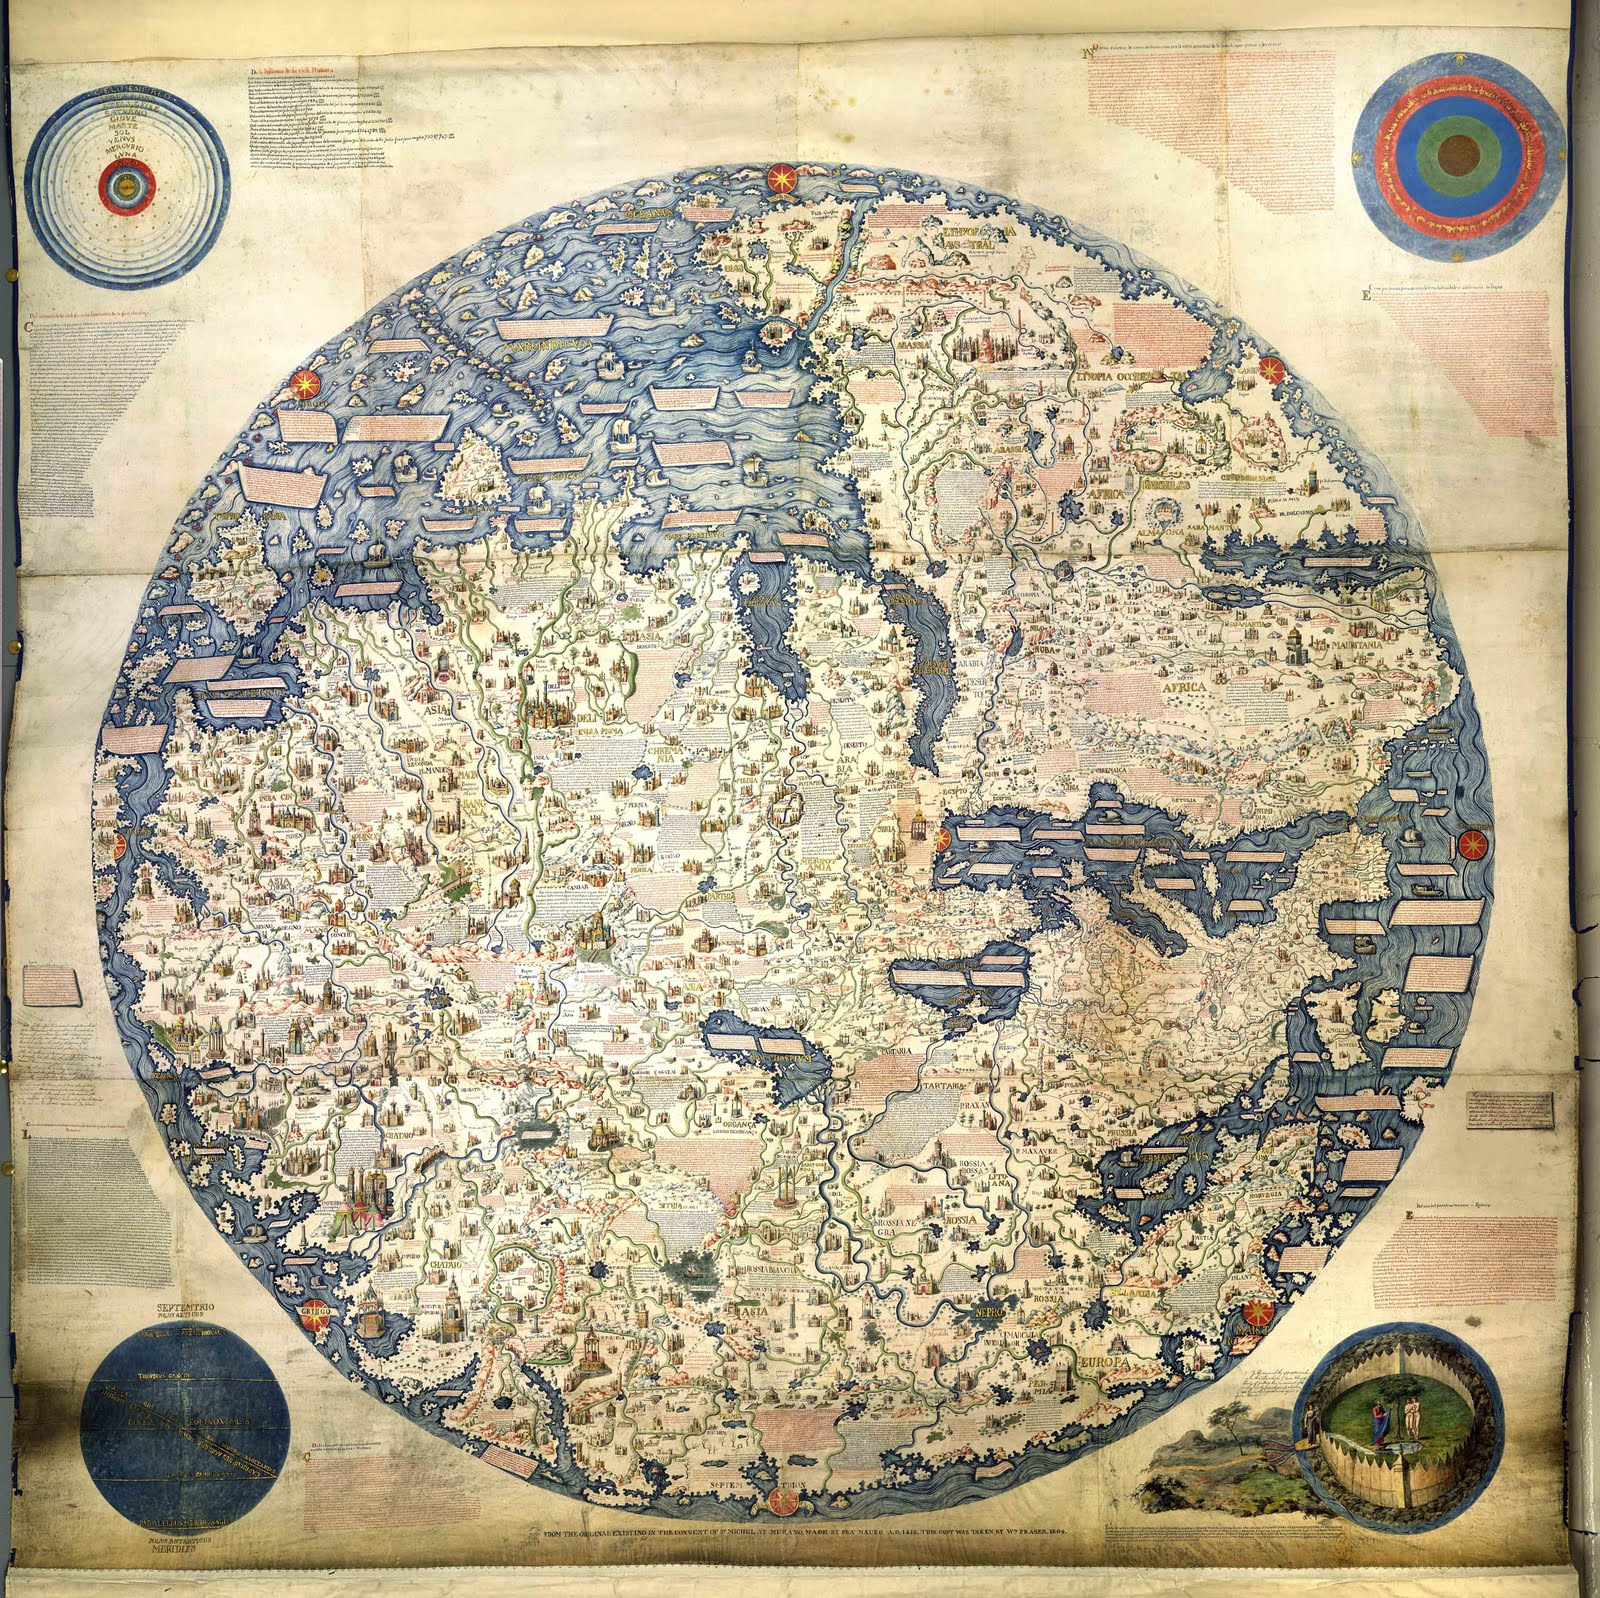 History in the news first impressions magnificent maps power fra mauro produced what many consider to be the first modern world map c1450 as it included recent portuguese discoveries in africa gumiabroncs Gallery